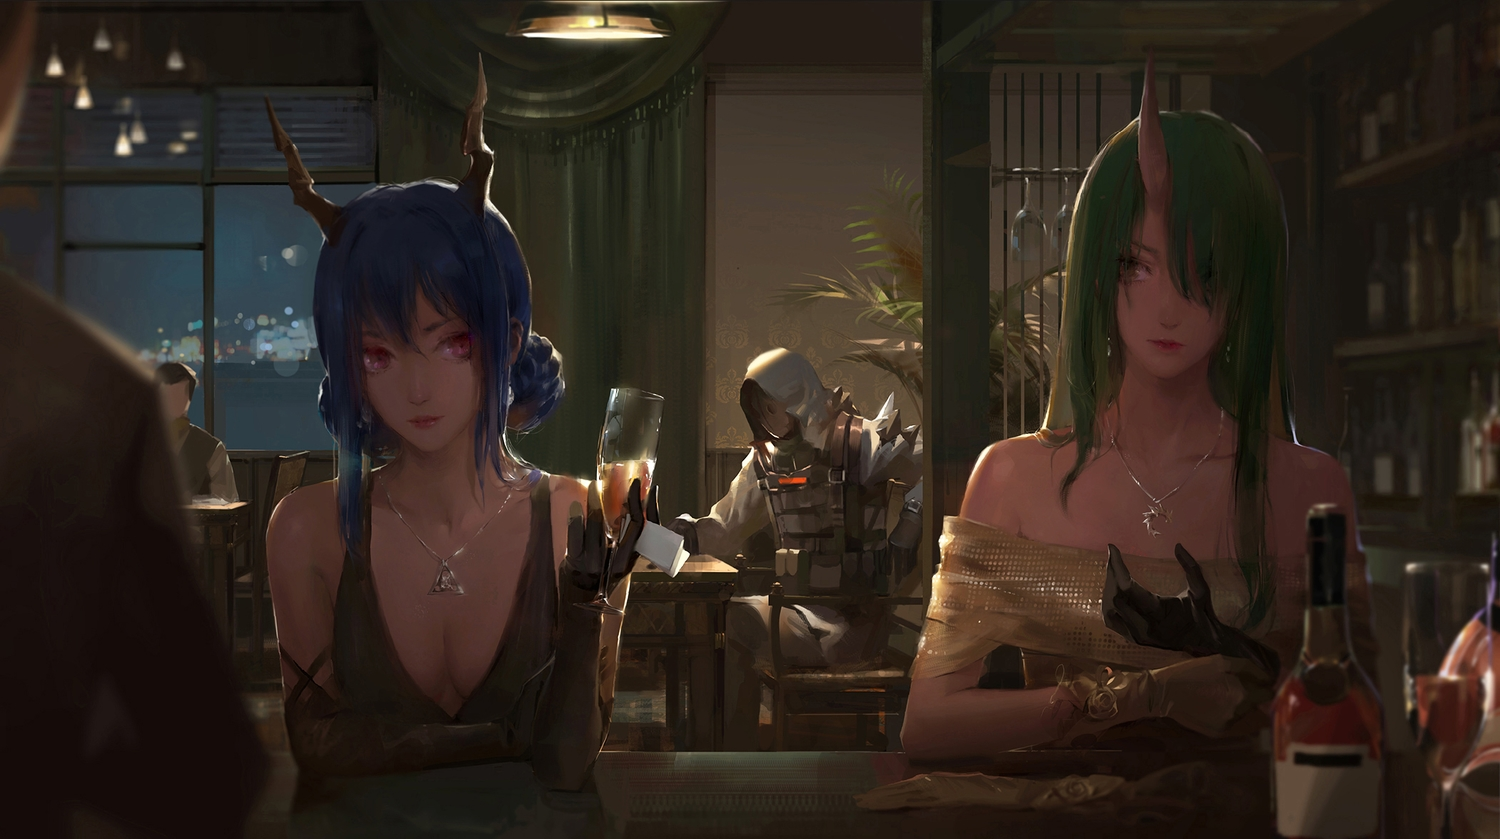 a-m-one arknights blue_hair breasts ch'en_(arknights) cleavage drink elbow_gloves gloves green_hair group hoodie horns hoshiguma_(arknights) mask necklace paper pink_eyes realistic yellow_eyes